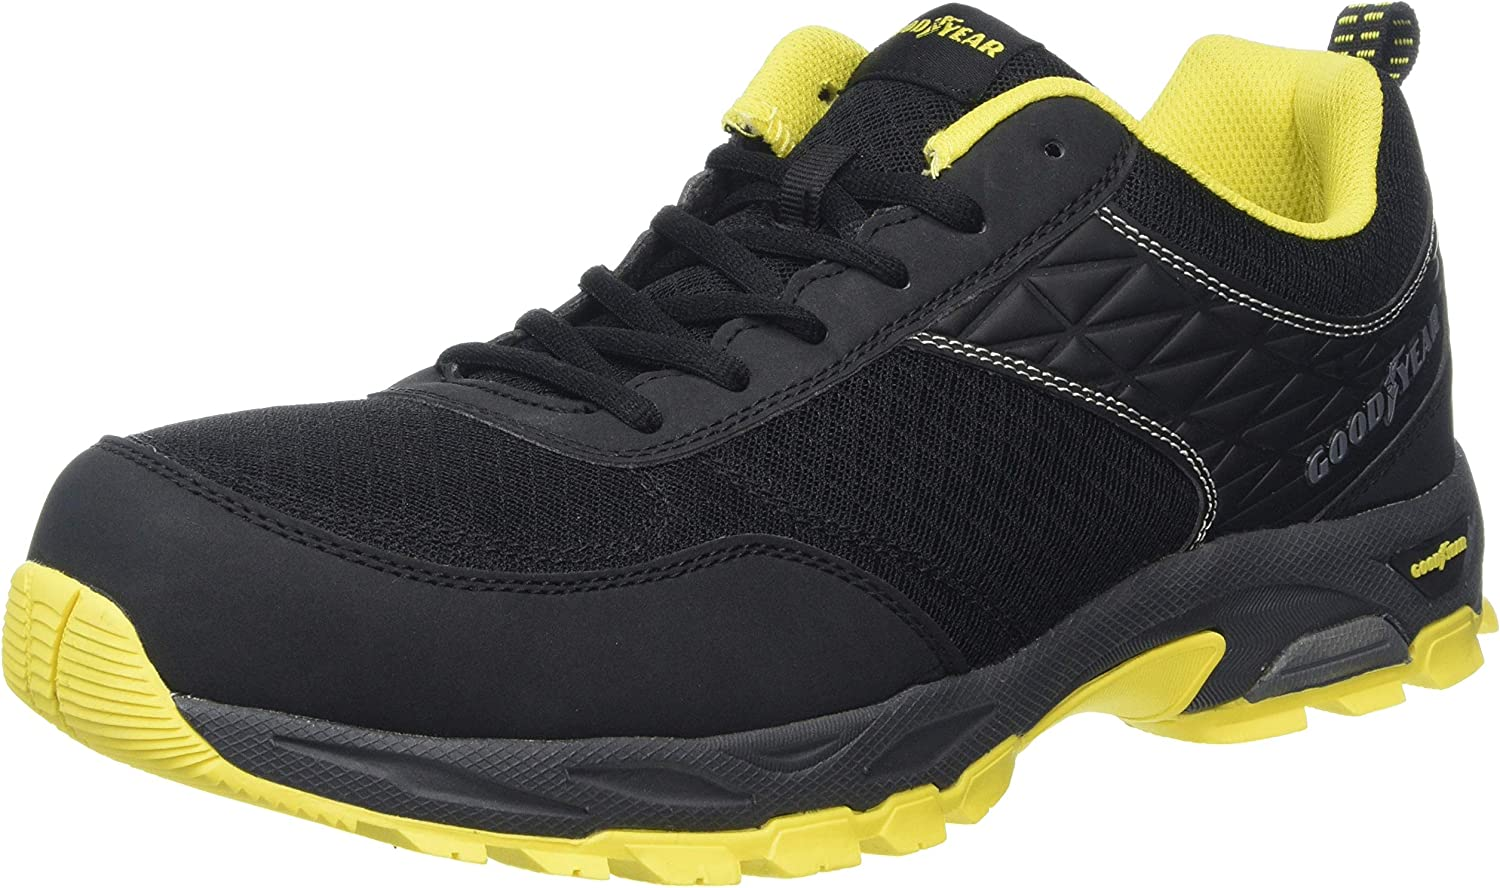 Goodyear Workwear GYSHU1532 Mens Lightweight Work Safety Sporty Athletic Trainer Non Metallic Composite Toe Cap & Midsole S1P SRA HRO, Black, UK 11 EU 45